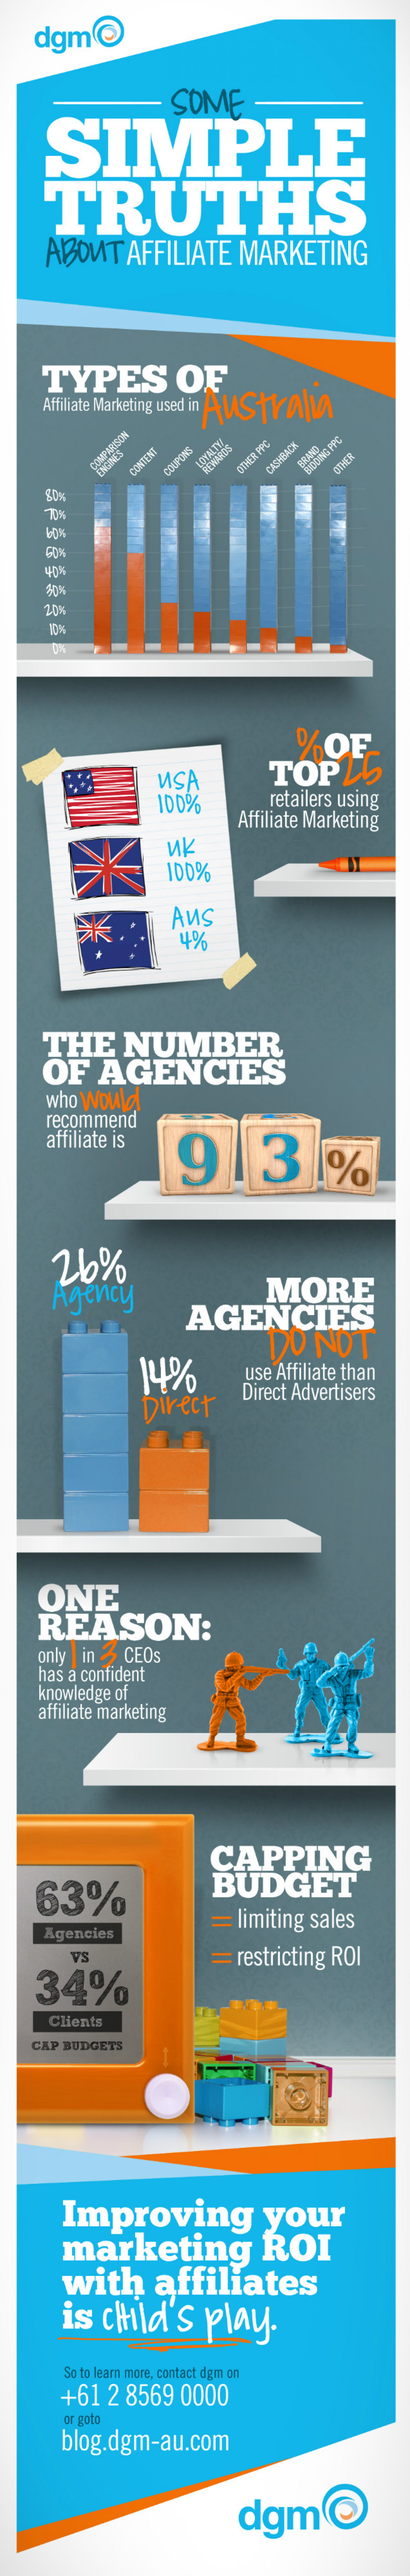 Some Simple Truths About Affiliate Marketing in Australia Infographic